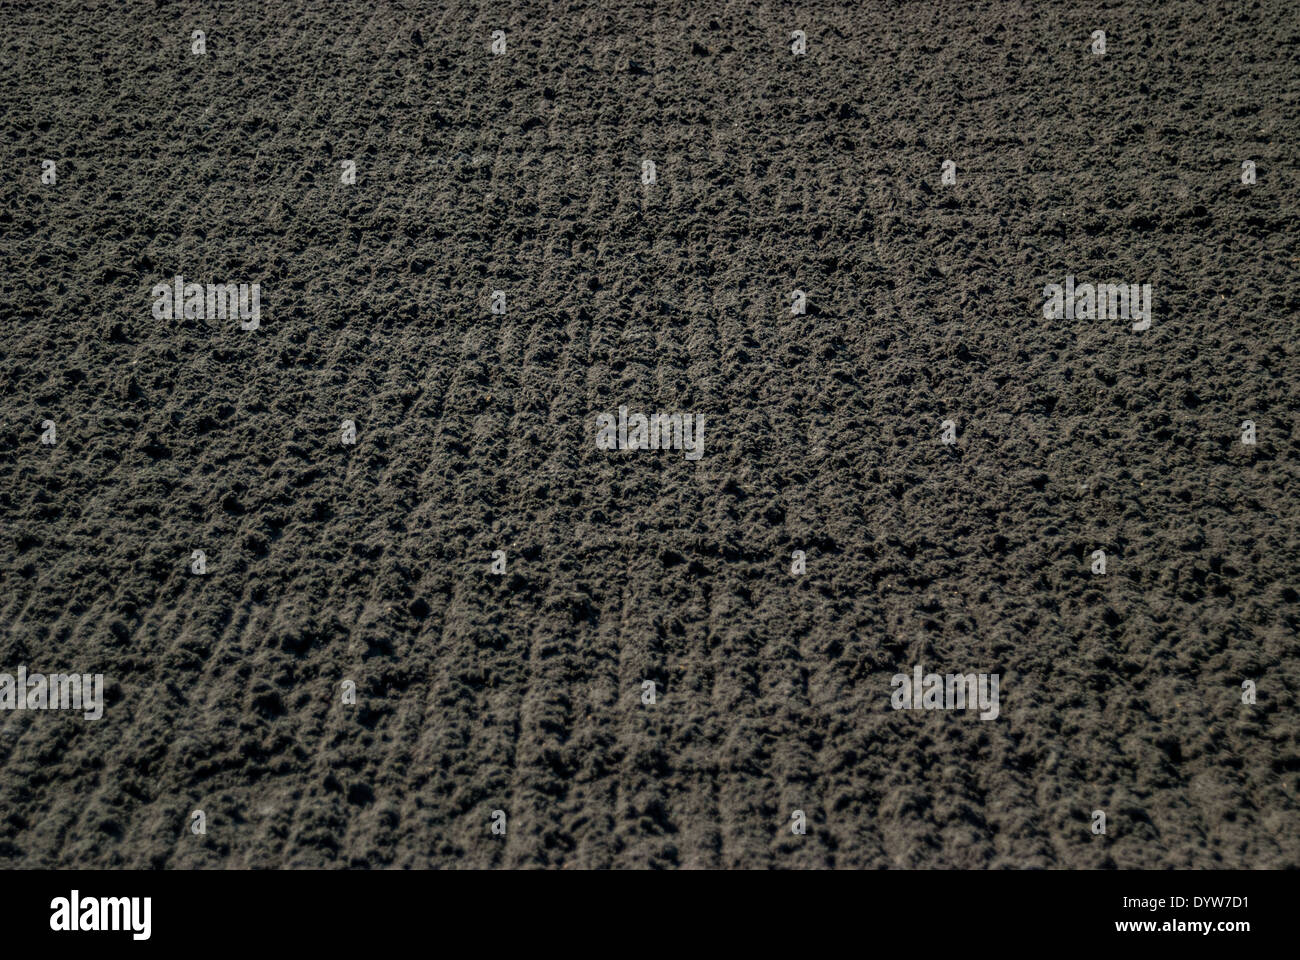 Raked Dirt at a Horse Race Track - Stock Image